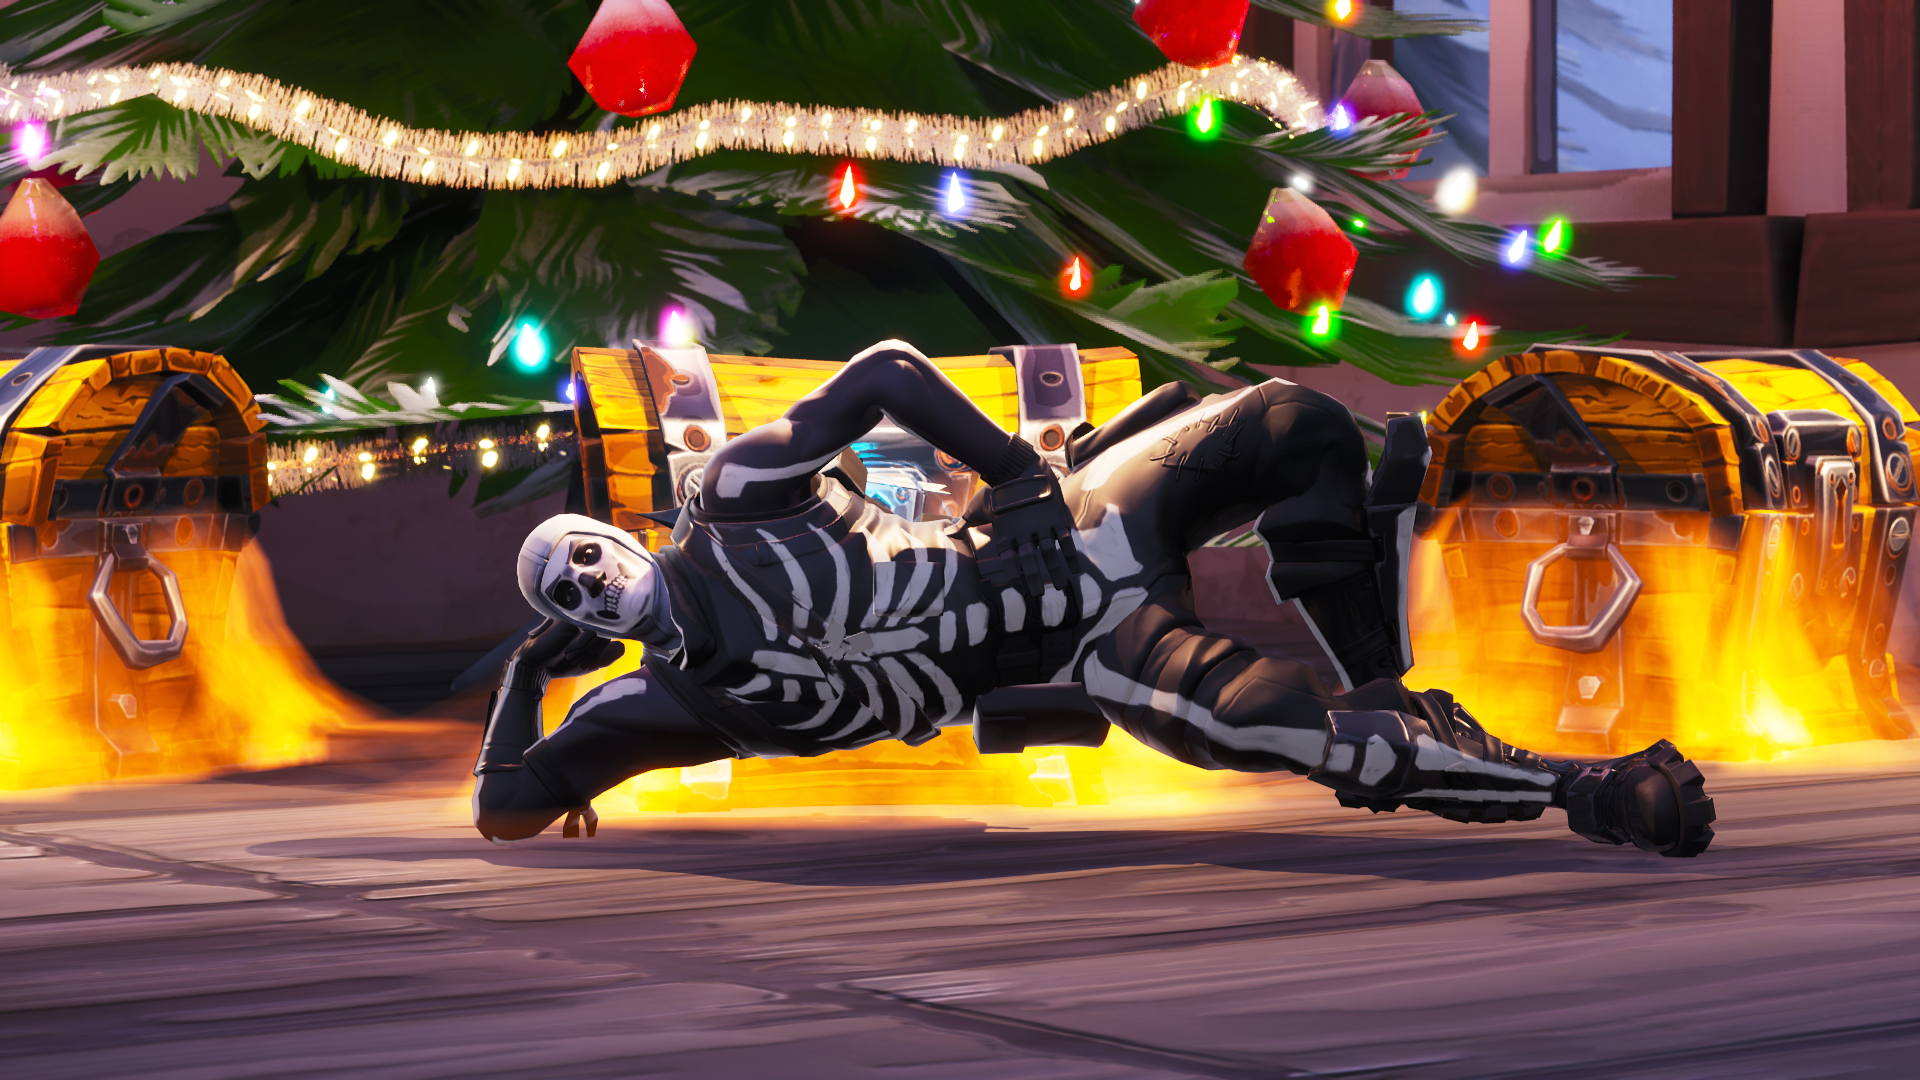 Christmas Fortnite Wallpapers Posted By Christopher Tremblay